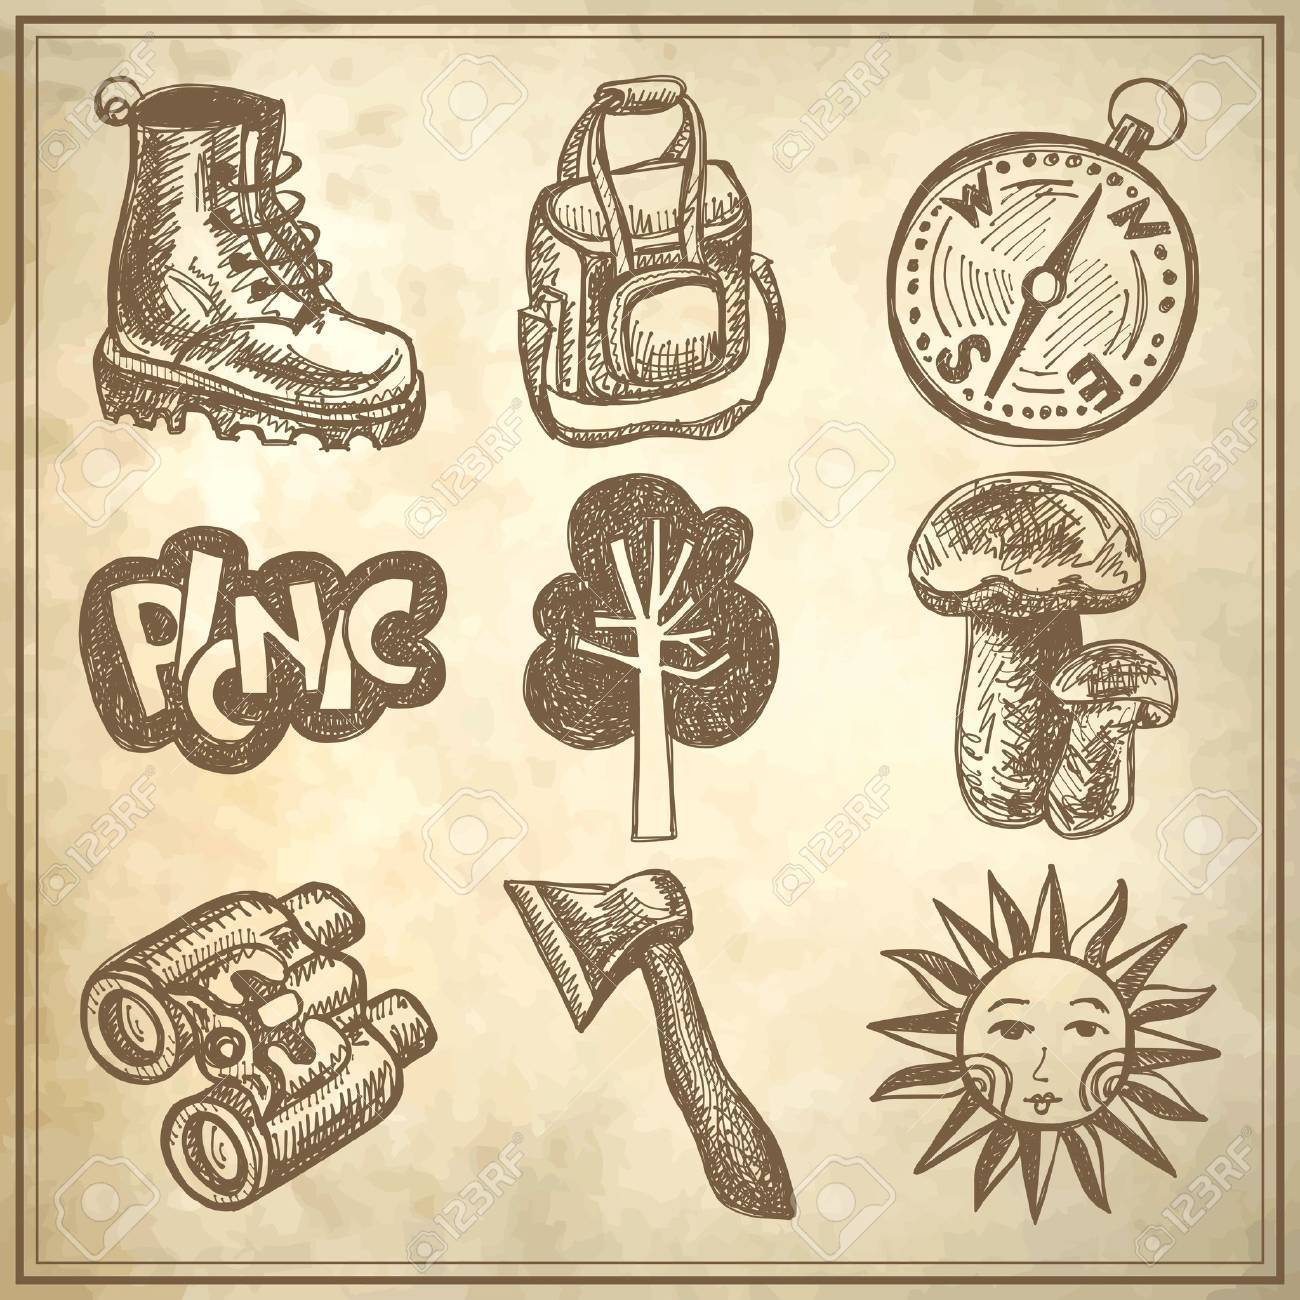 sketch doodle icon collection, picnic, travel and camping theme on grunge background Stock Vector - 18036558